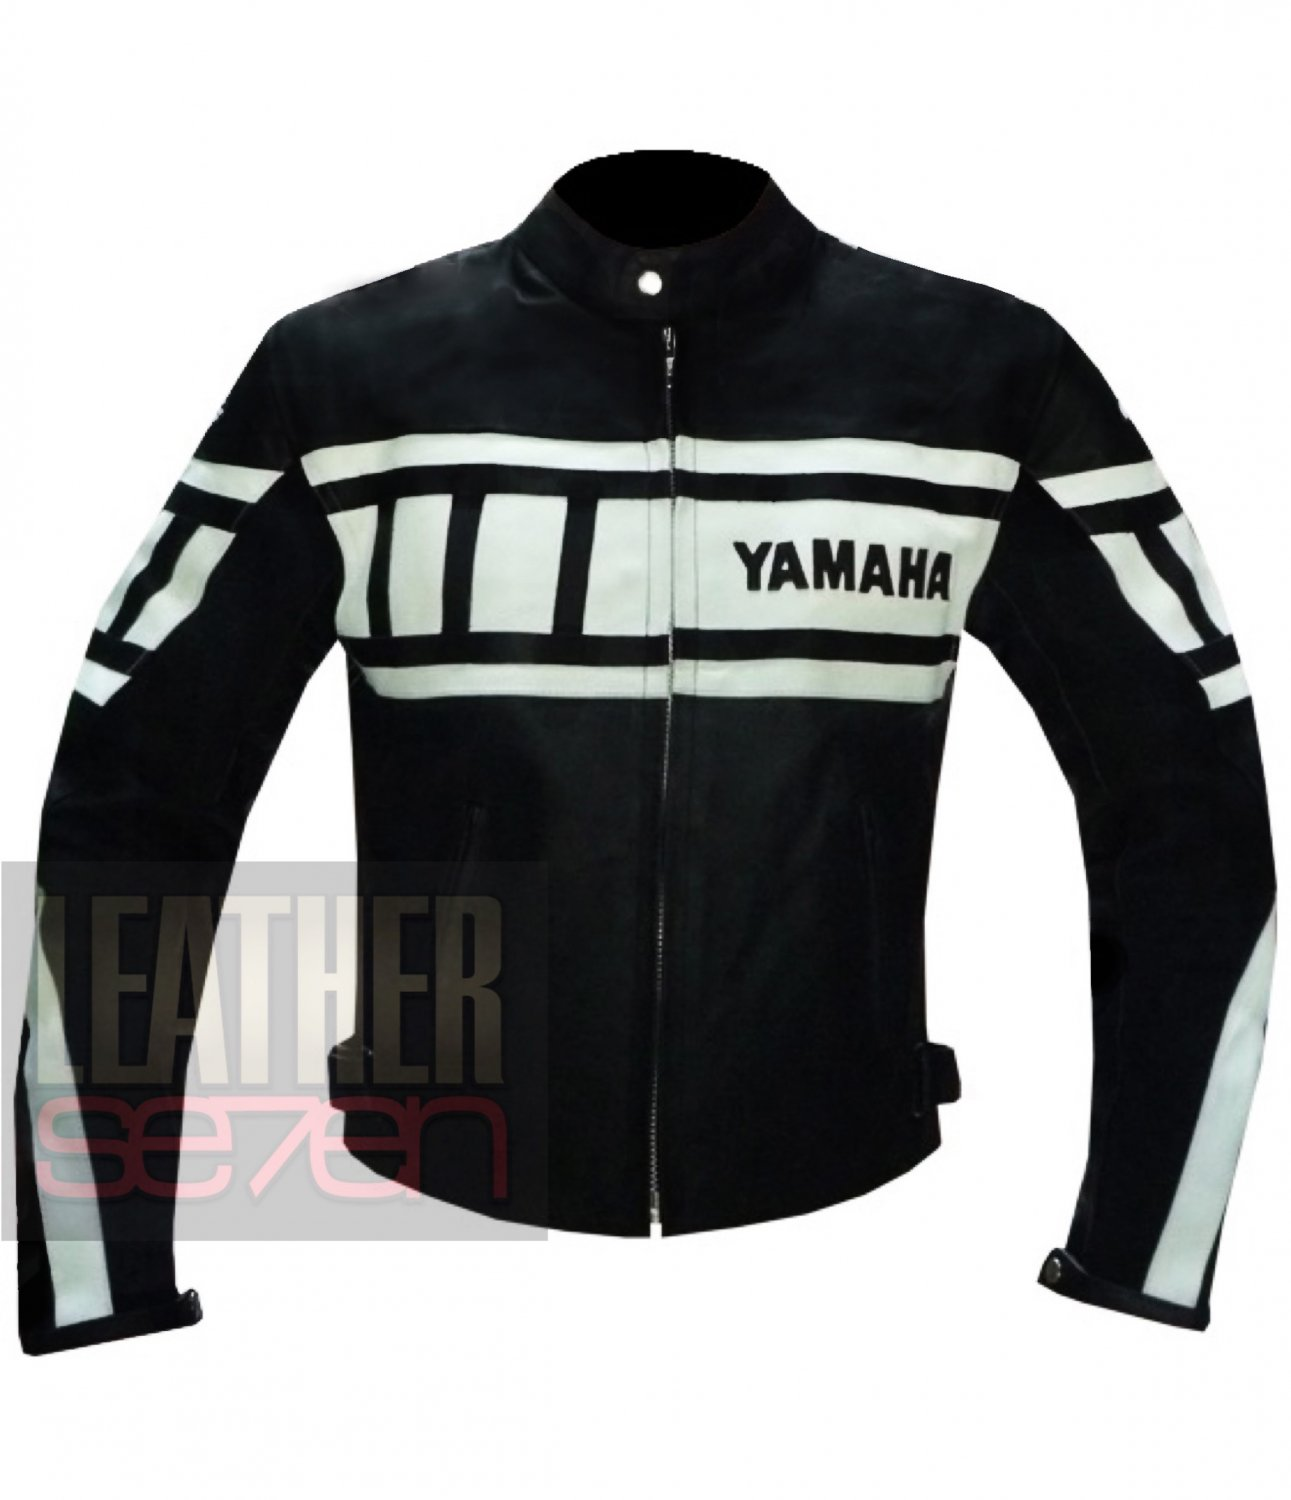 Yamaha 0120 Black Classic Cowhide Leather Safety Jacket For Professional Bikers